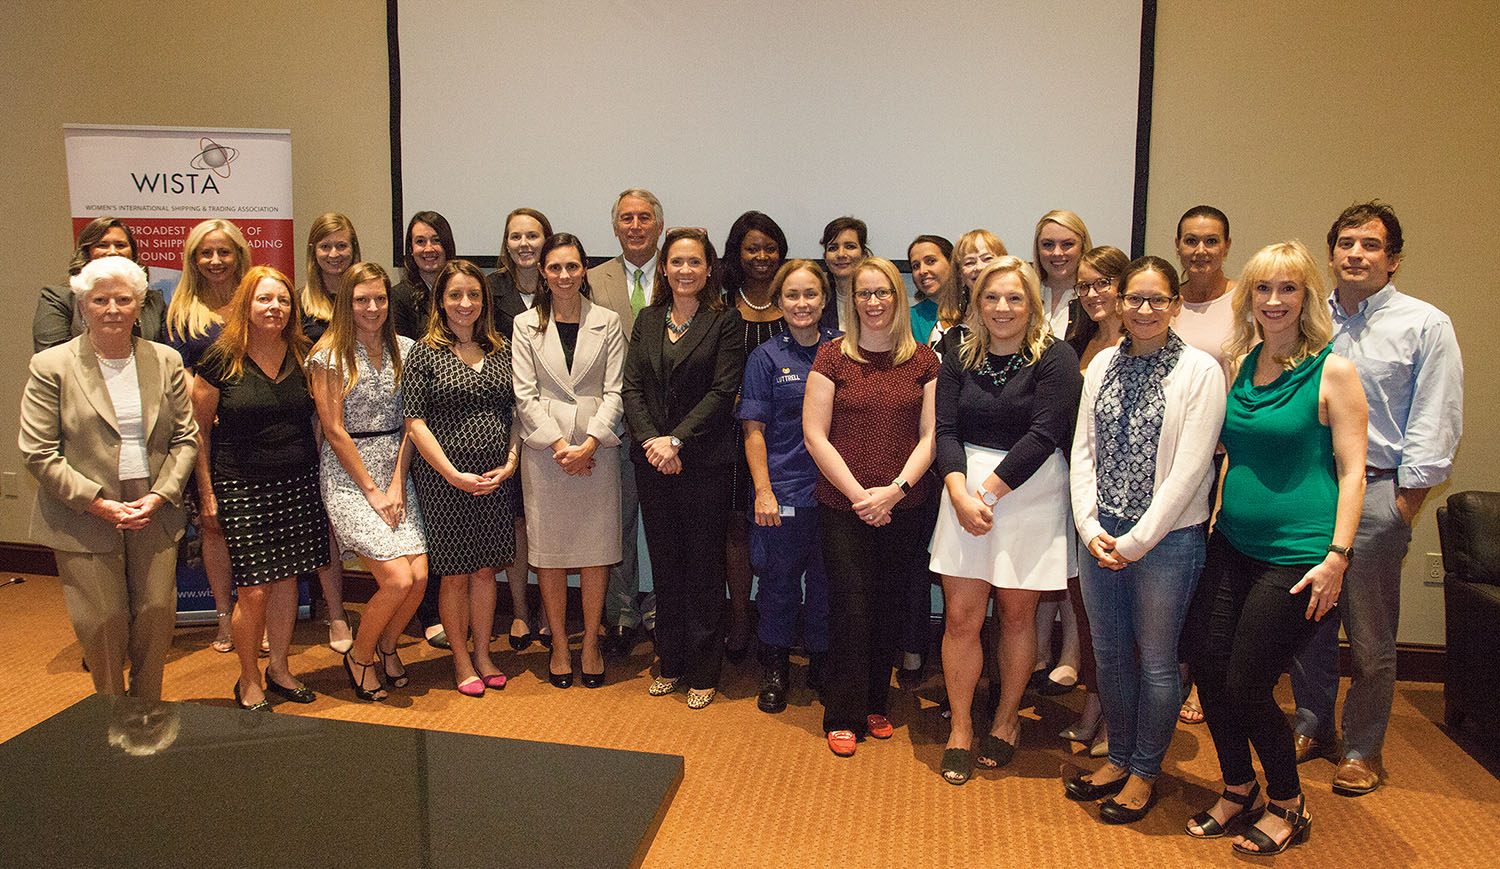 Attendees at the recent WISTA luncheon and Leaders in Maritime Panel in New Orleans. (Photo by Frank McCormack)